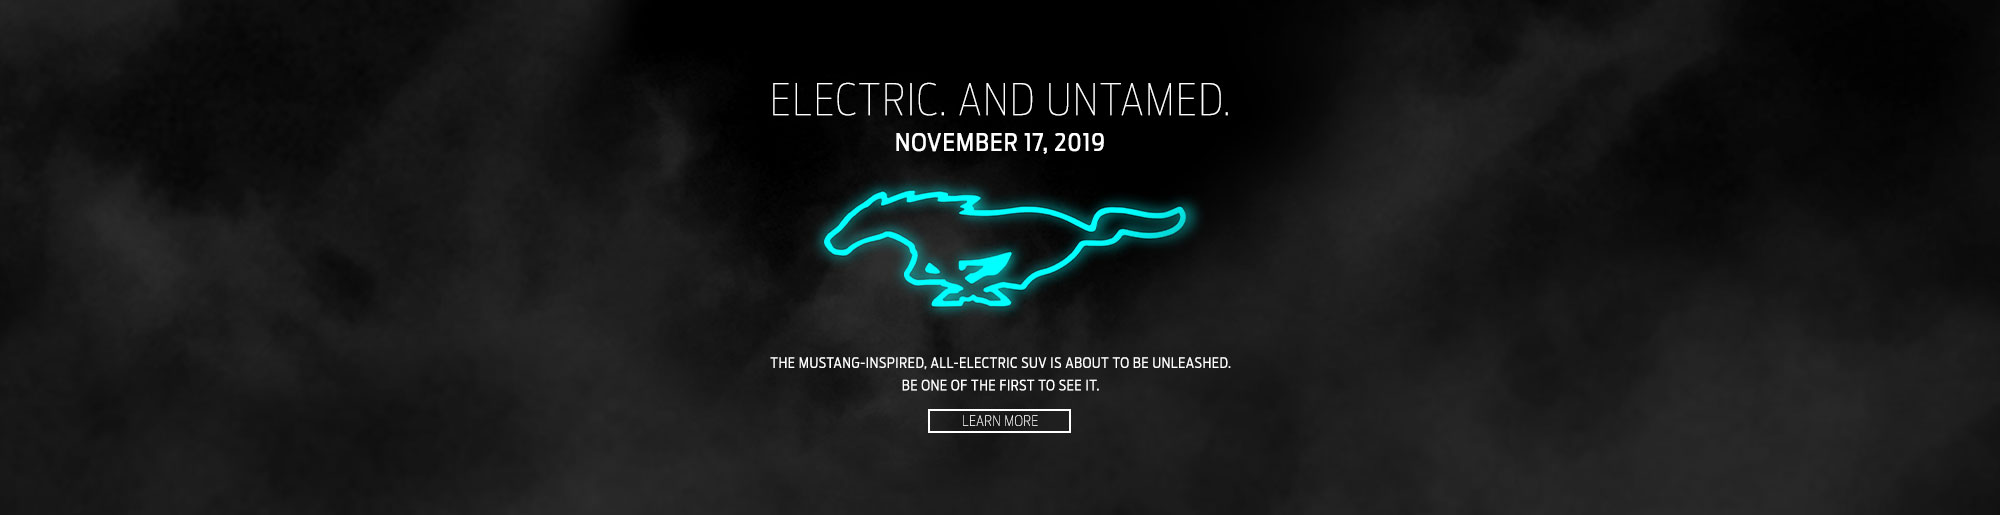 electric and untamed. november 17th, 2019. the mustang-inspired all-electric suv is about to be unleashed. be one of the first to see it.